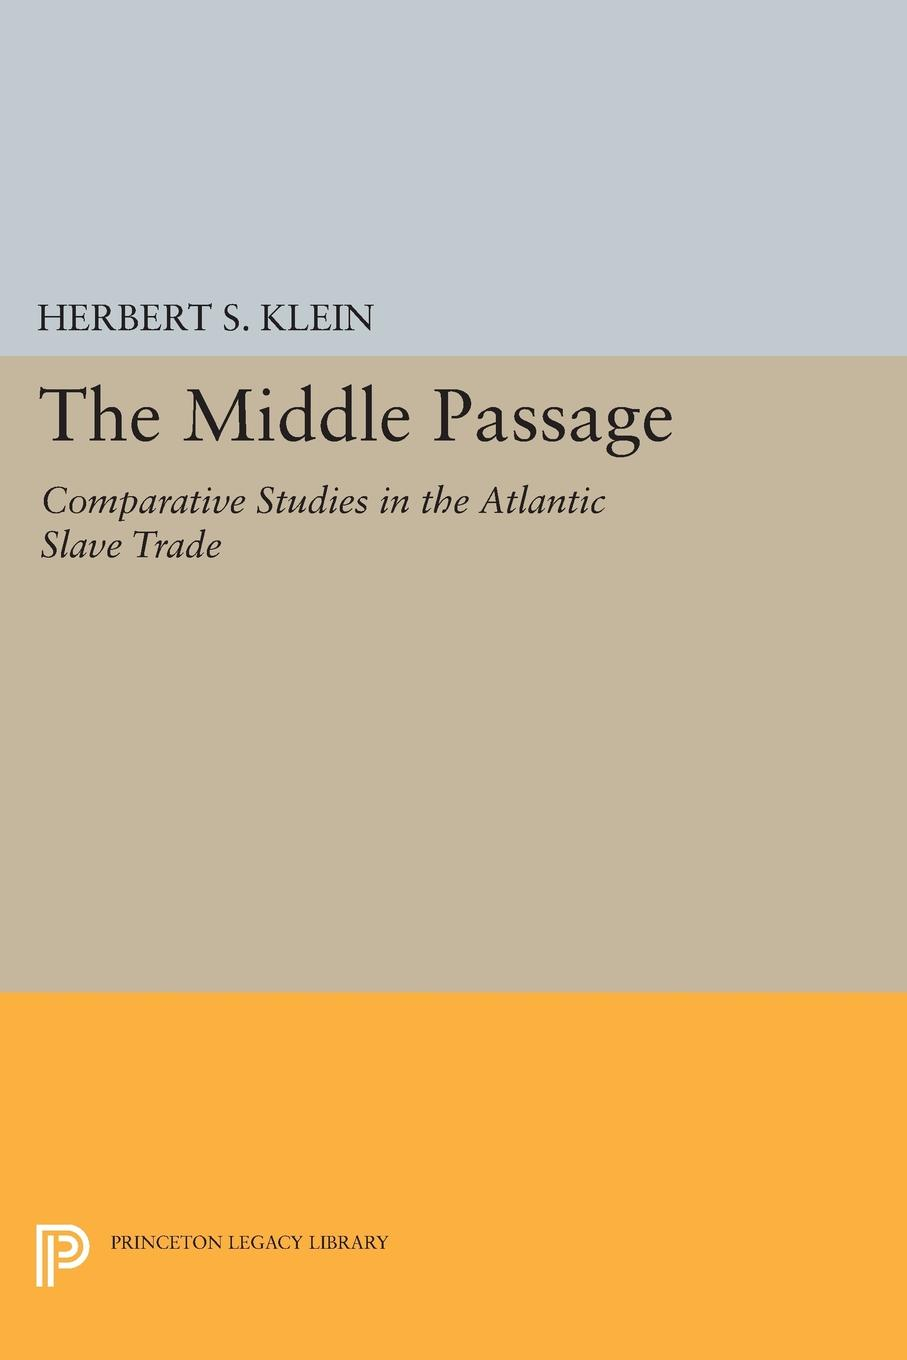 The Middle Passage by Herbert Klein PDF, Read Online | Perlego